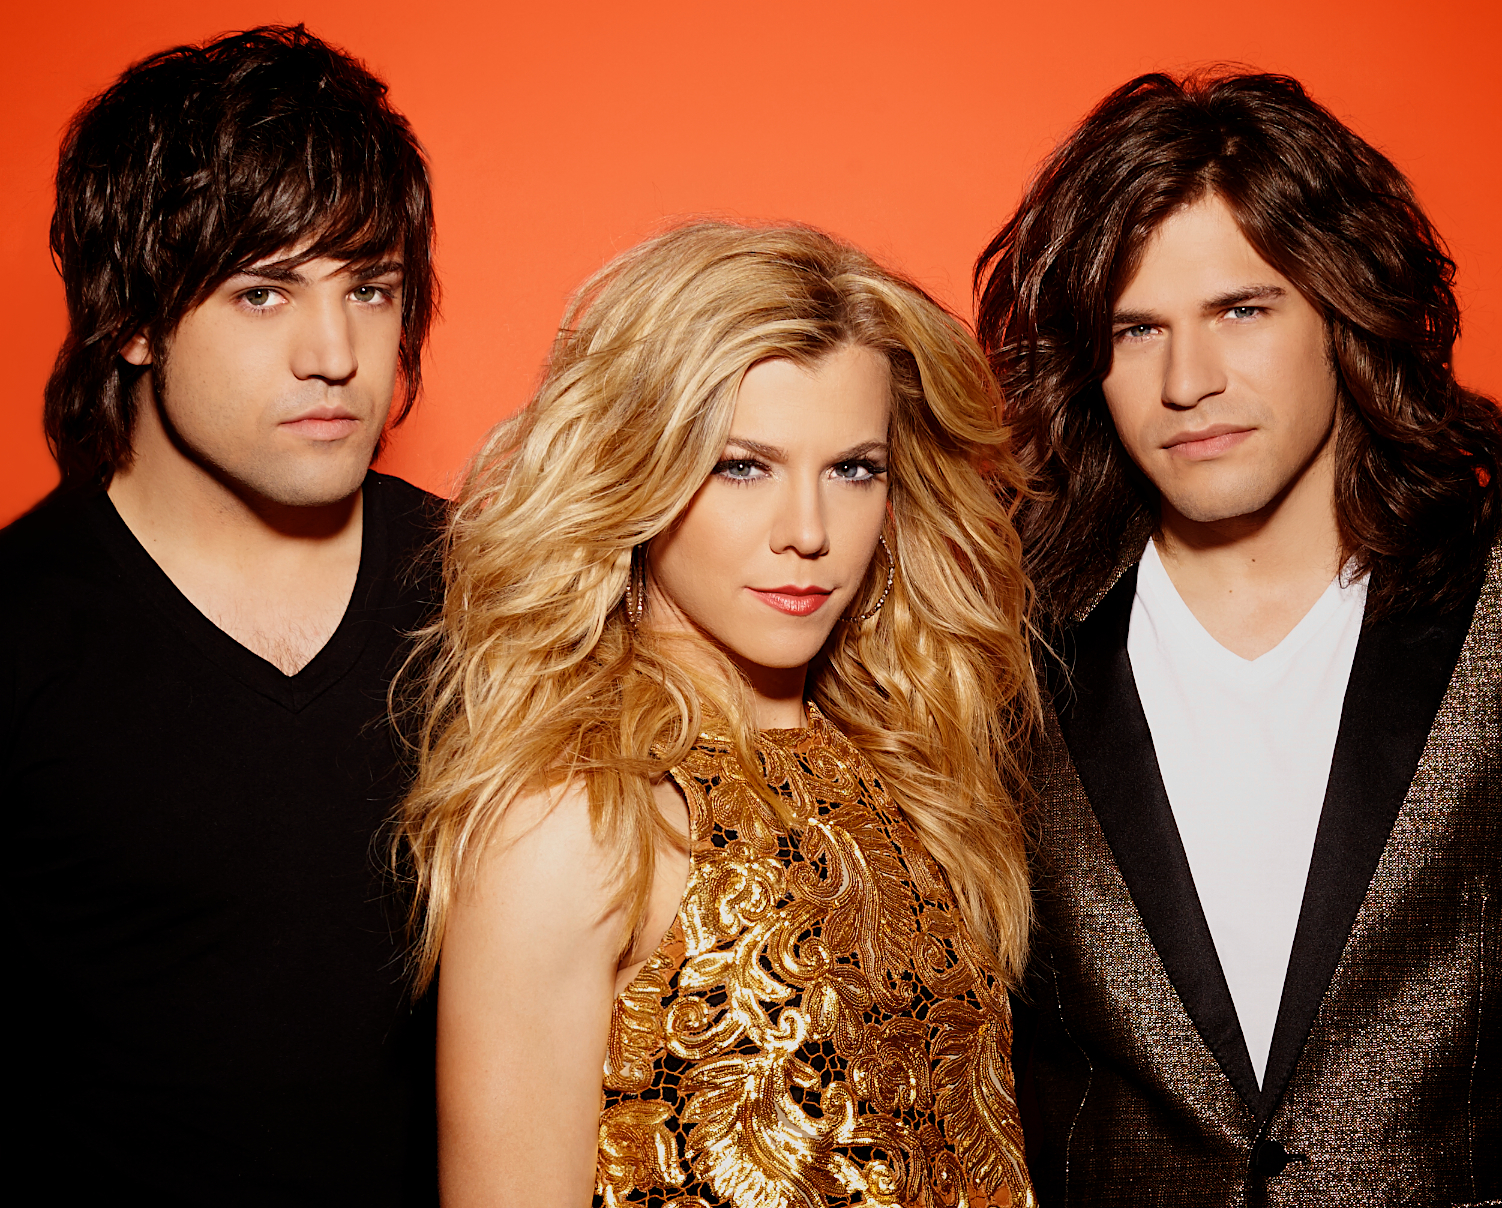 THE BAND PERRY Booking Agency | - 2701.2KB